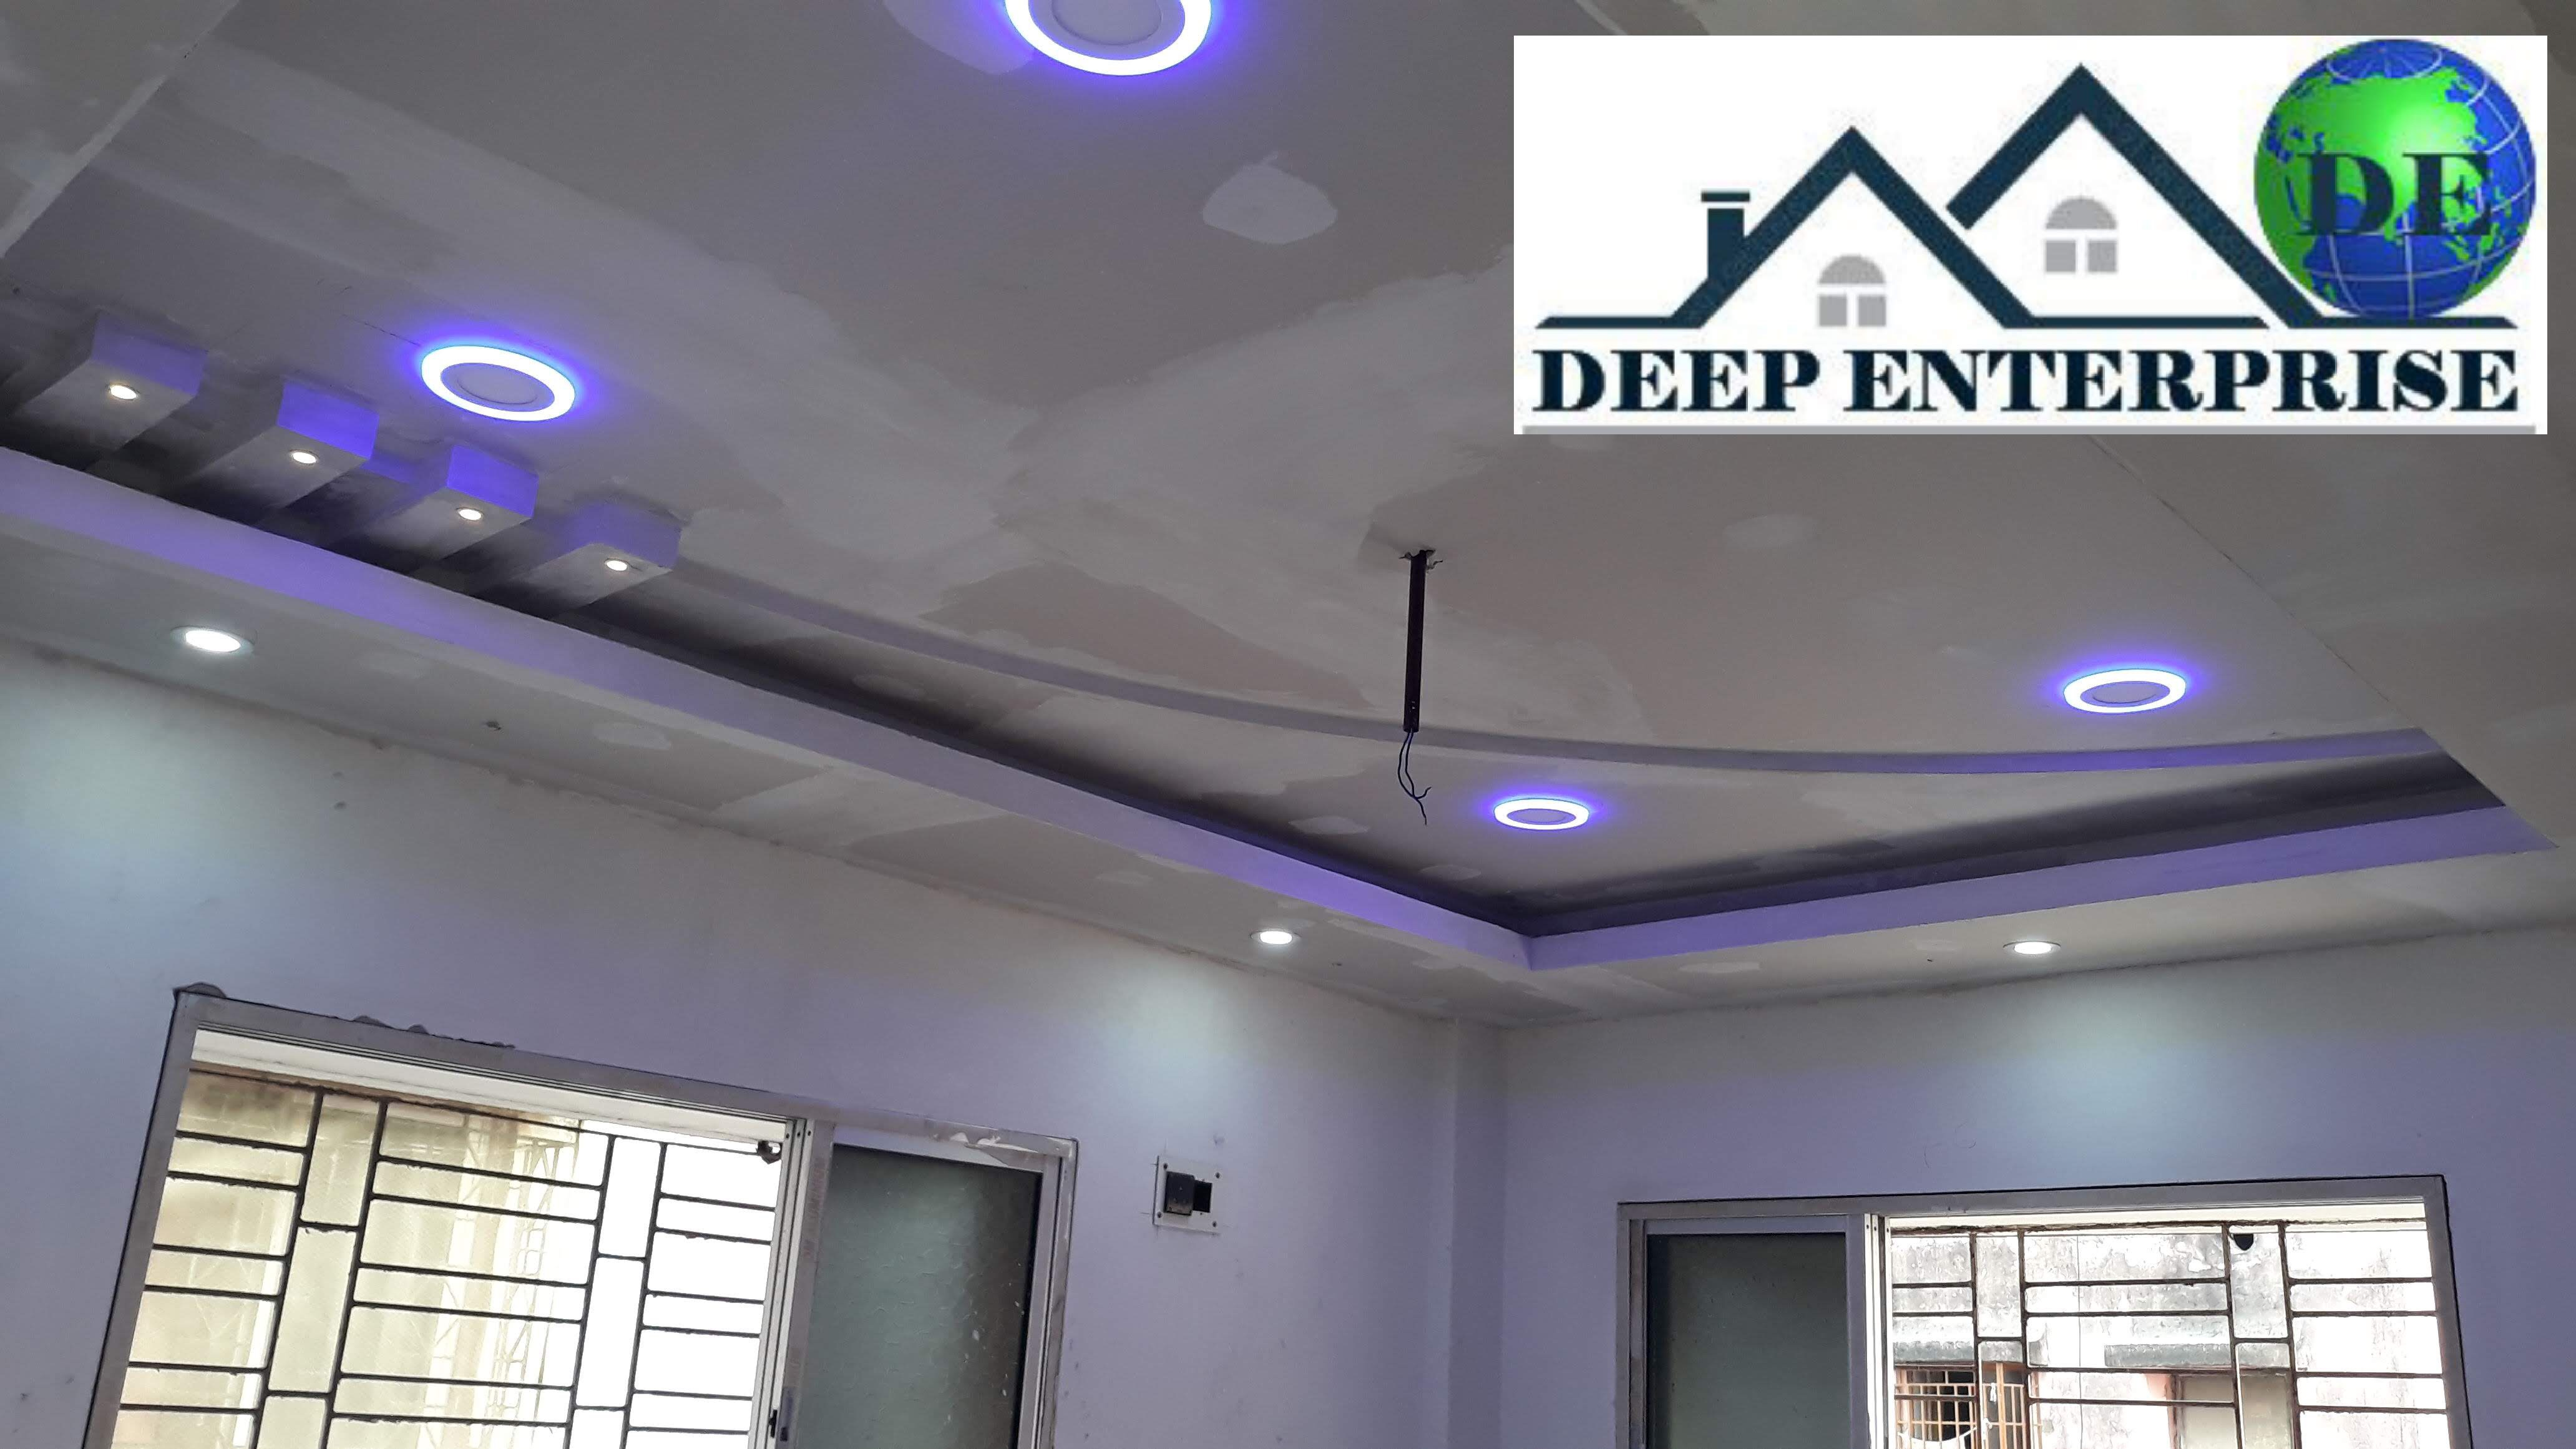 gypsum bod ceiling design, Master bedroom ceiling design, drywall gypsum bod false ceiling , false ceiling , roof ceiling design , gypsum bod false ceiling design , heat prove false ceiling design,